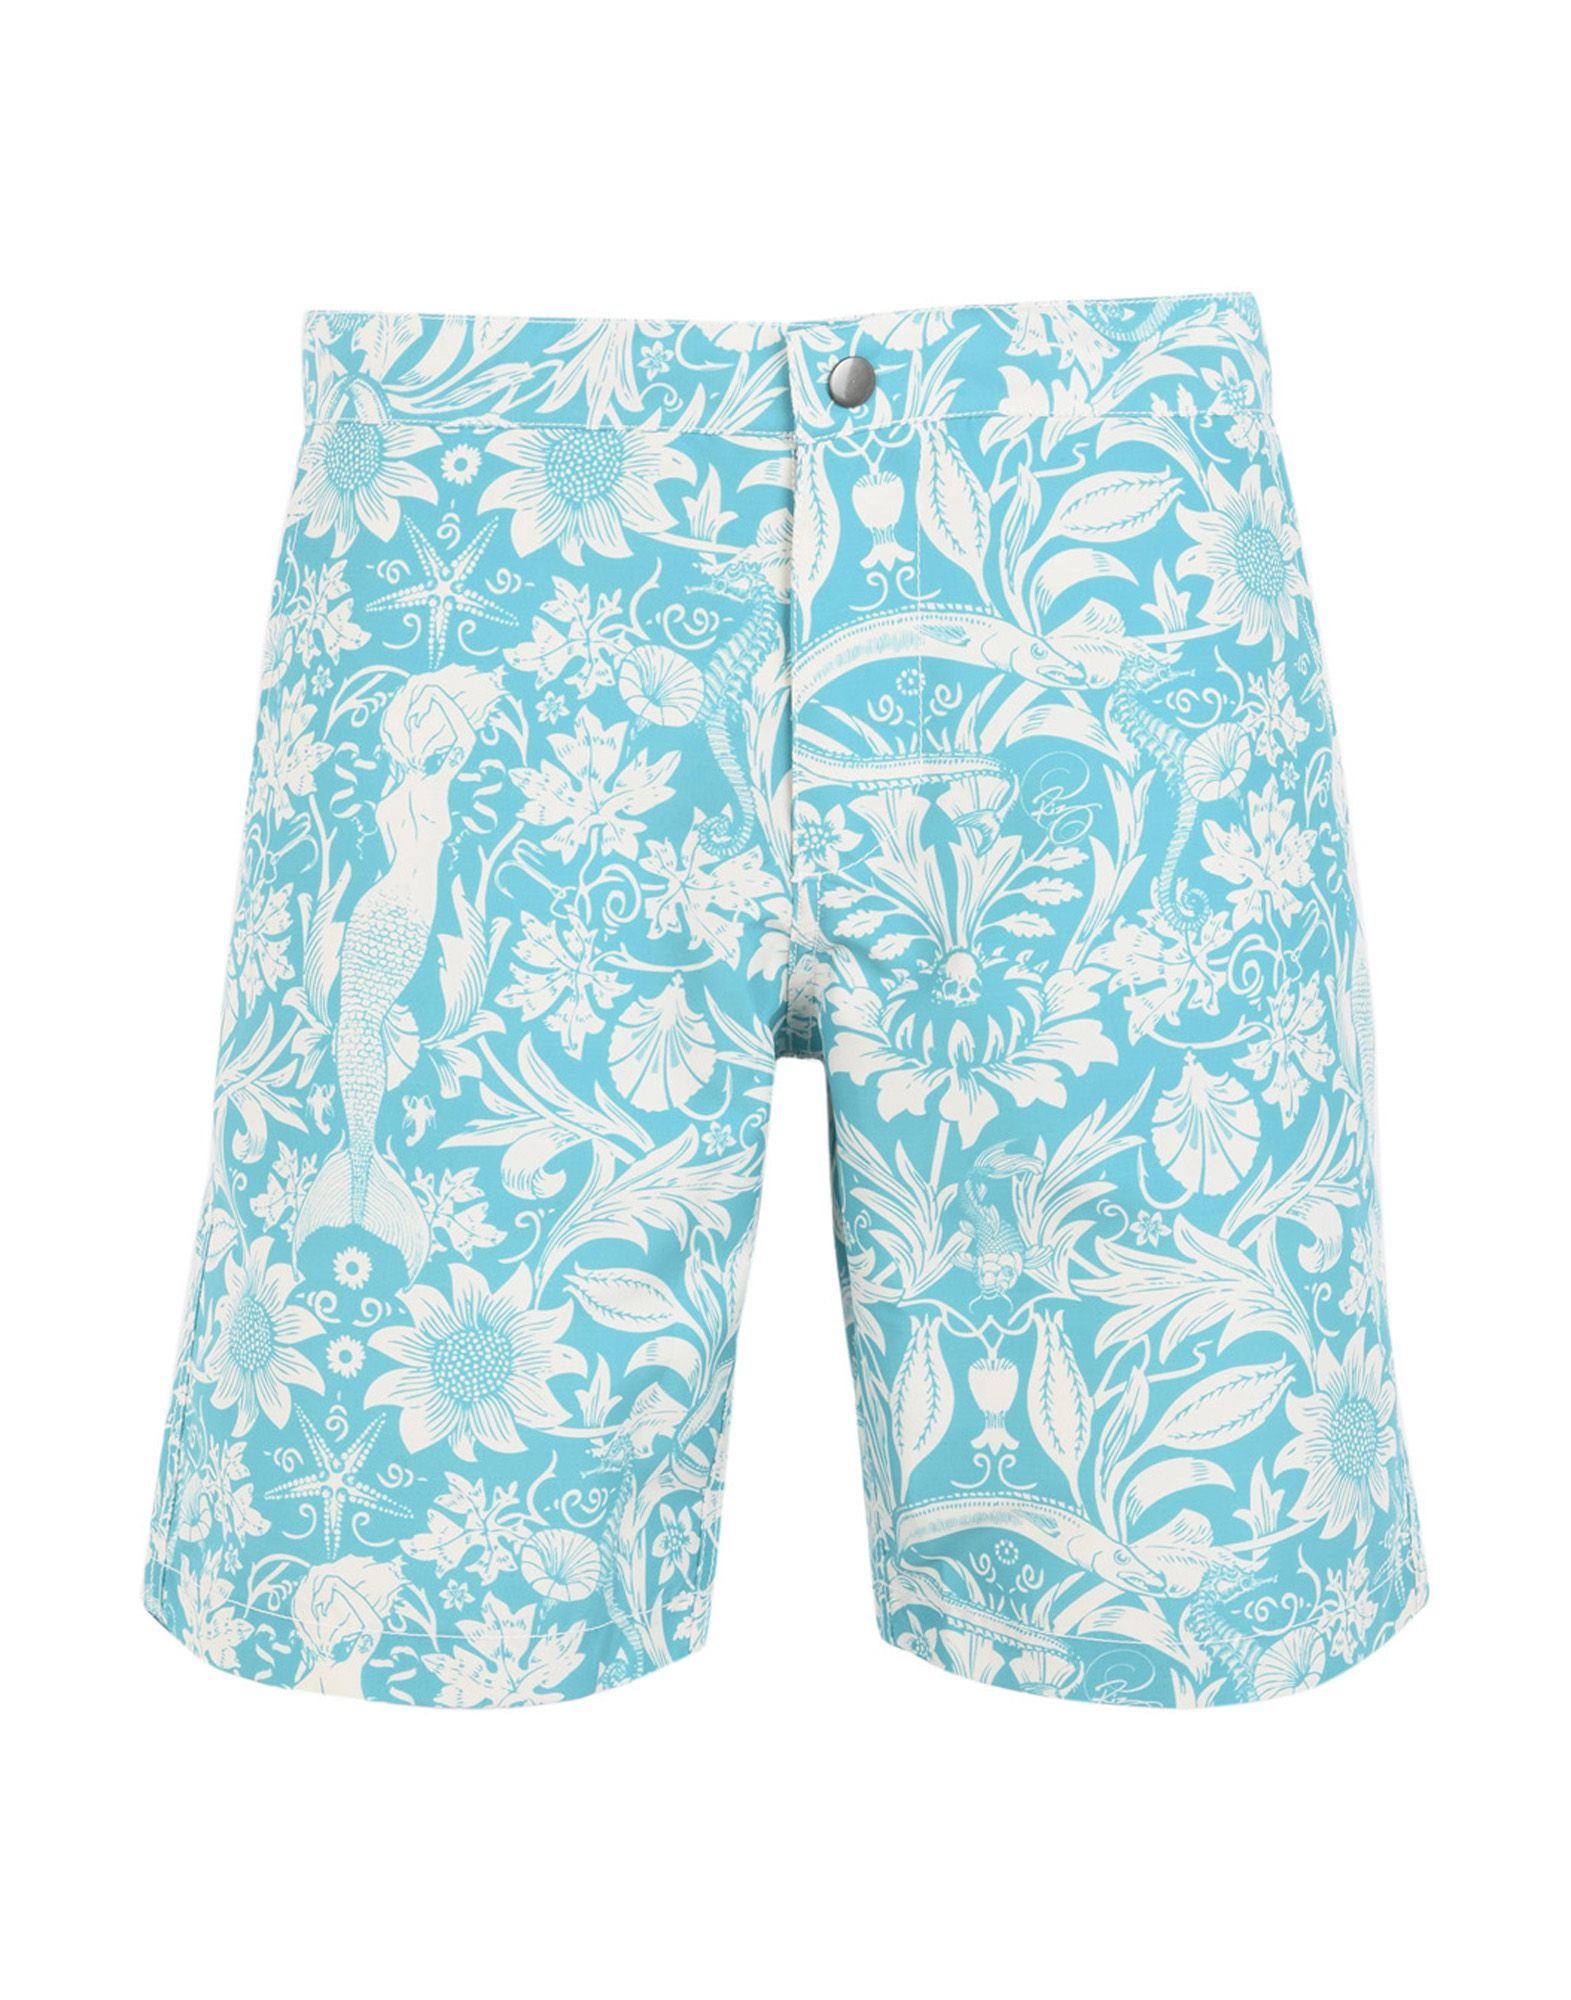 RIZ BOARDSHORTS Swim Shorts in Turquoise